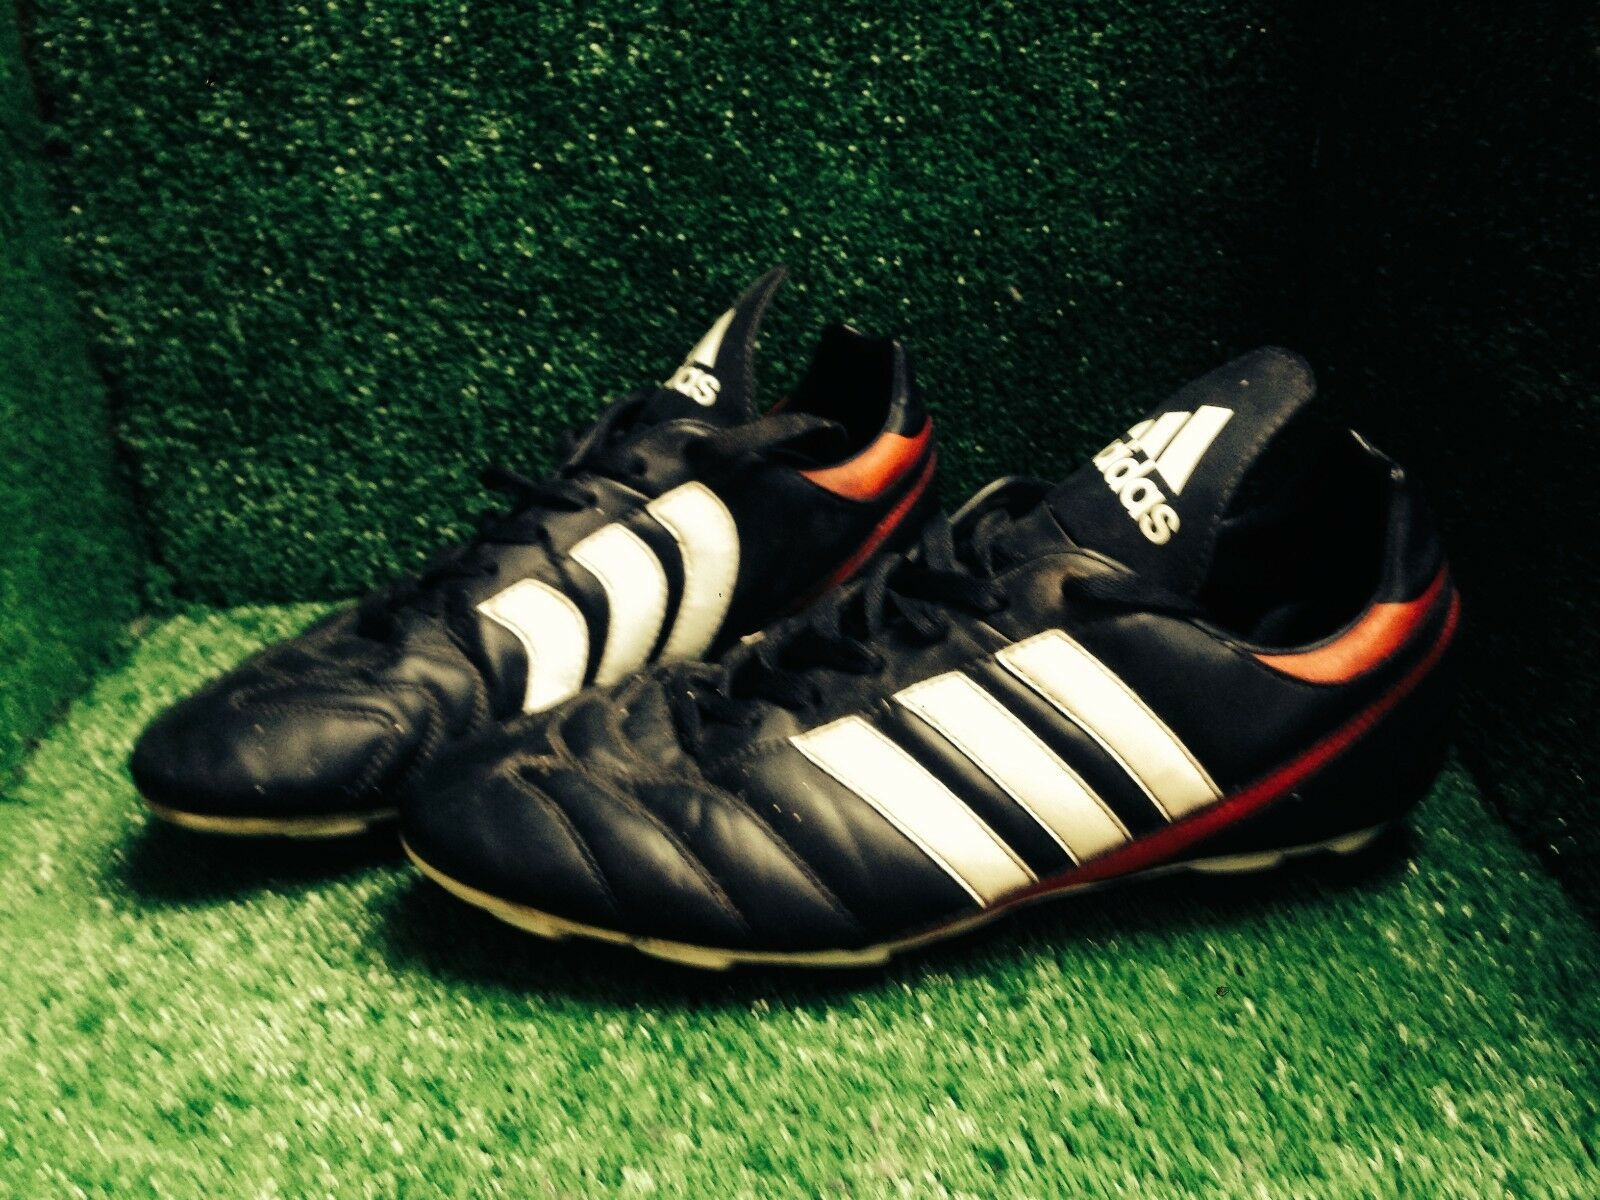 Adidas Predator absolute traxion shoes Size 11 10,5 45